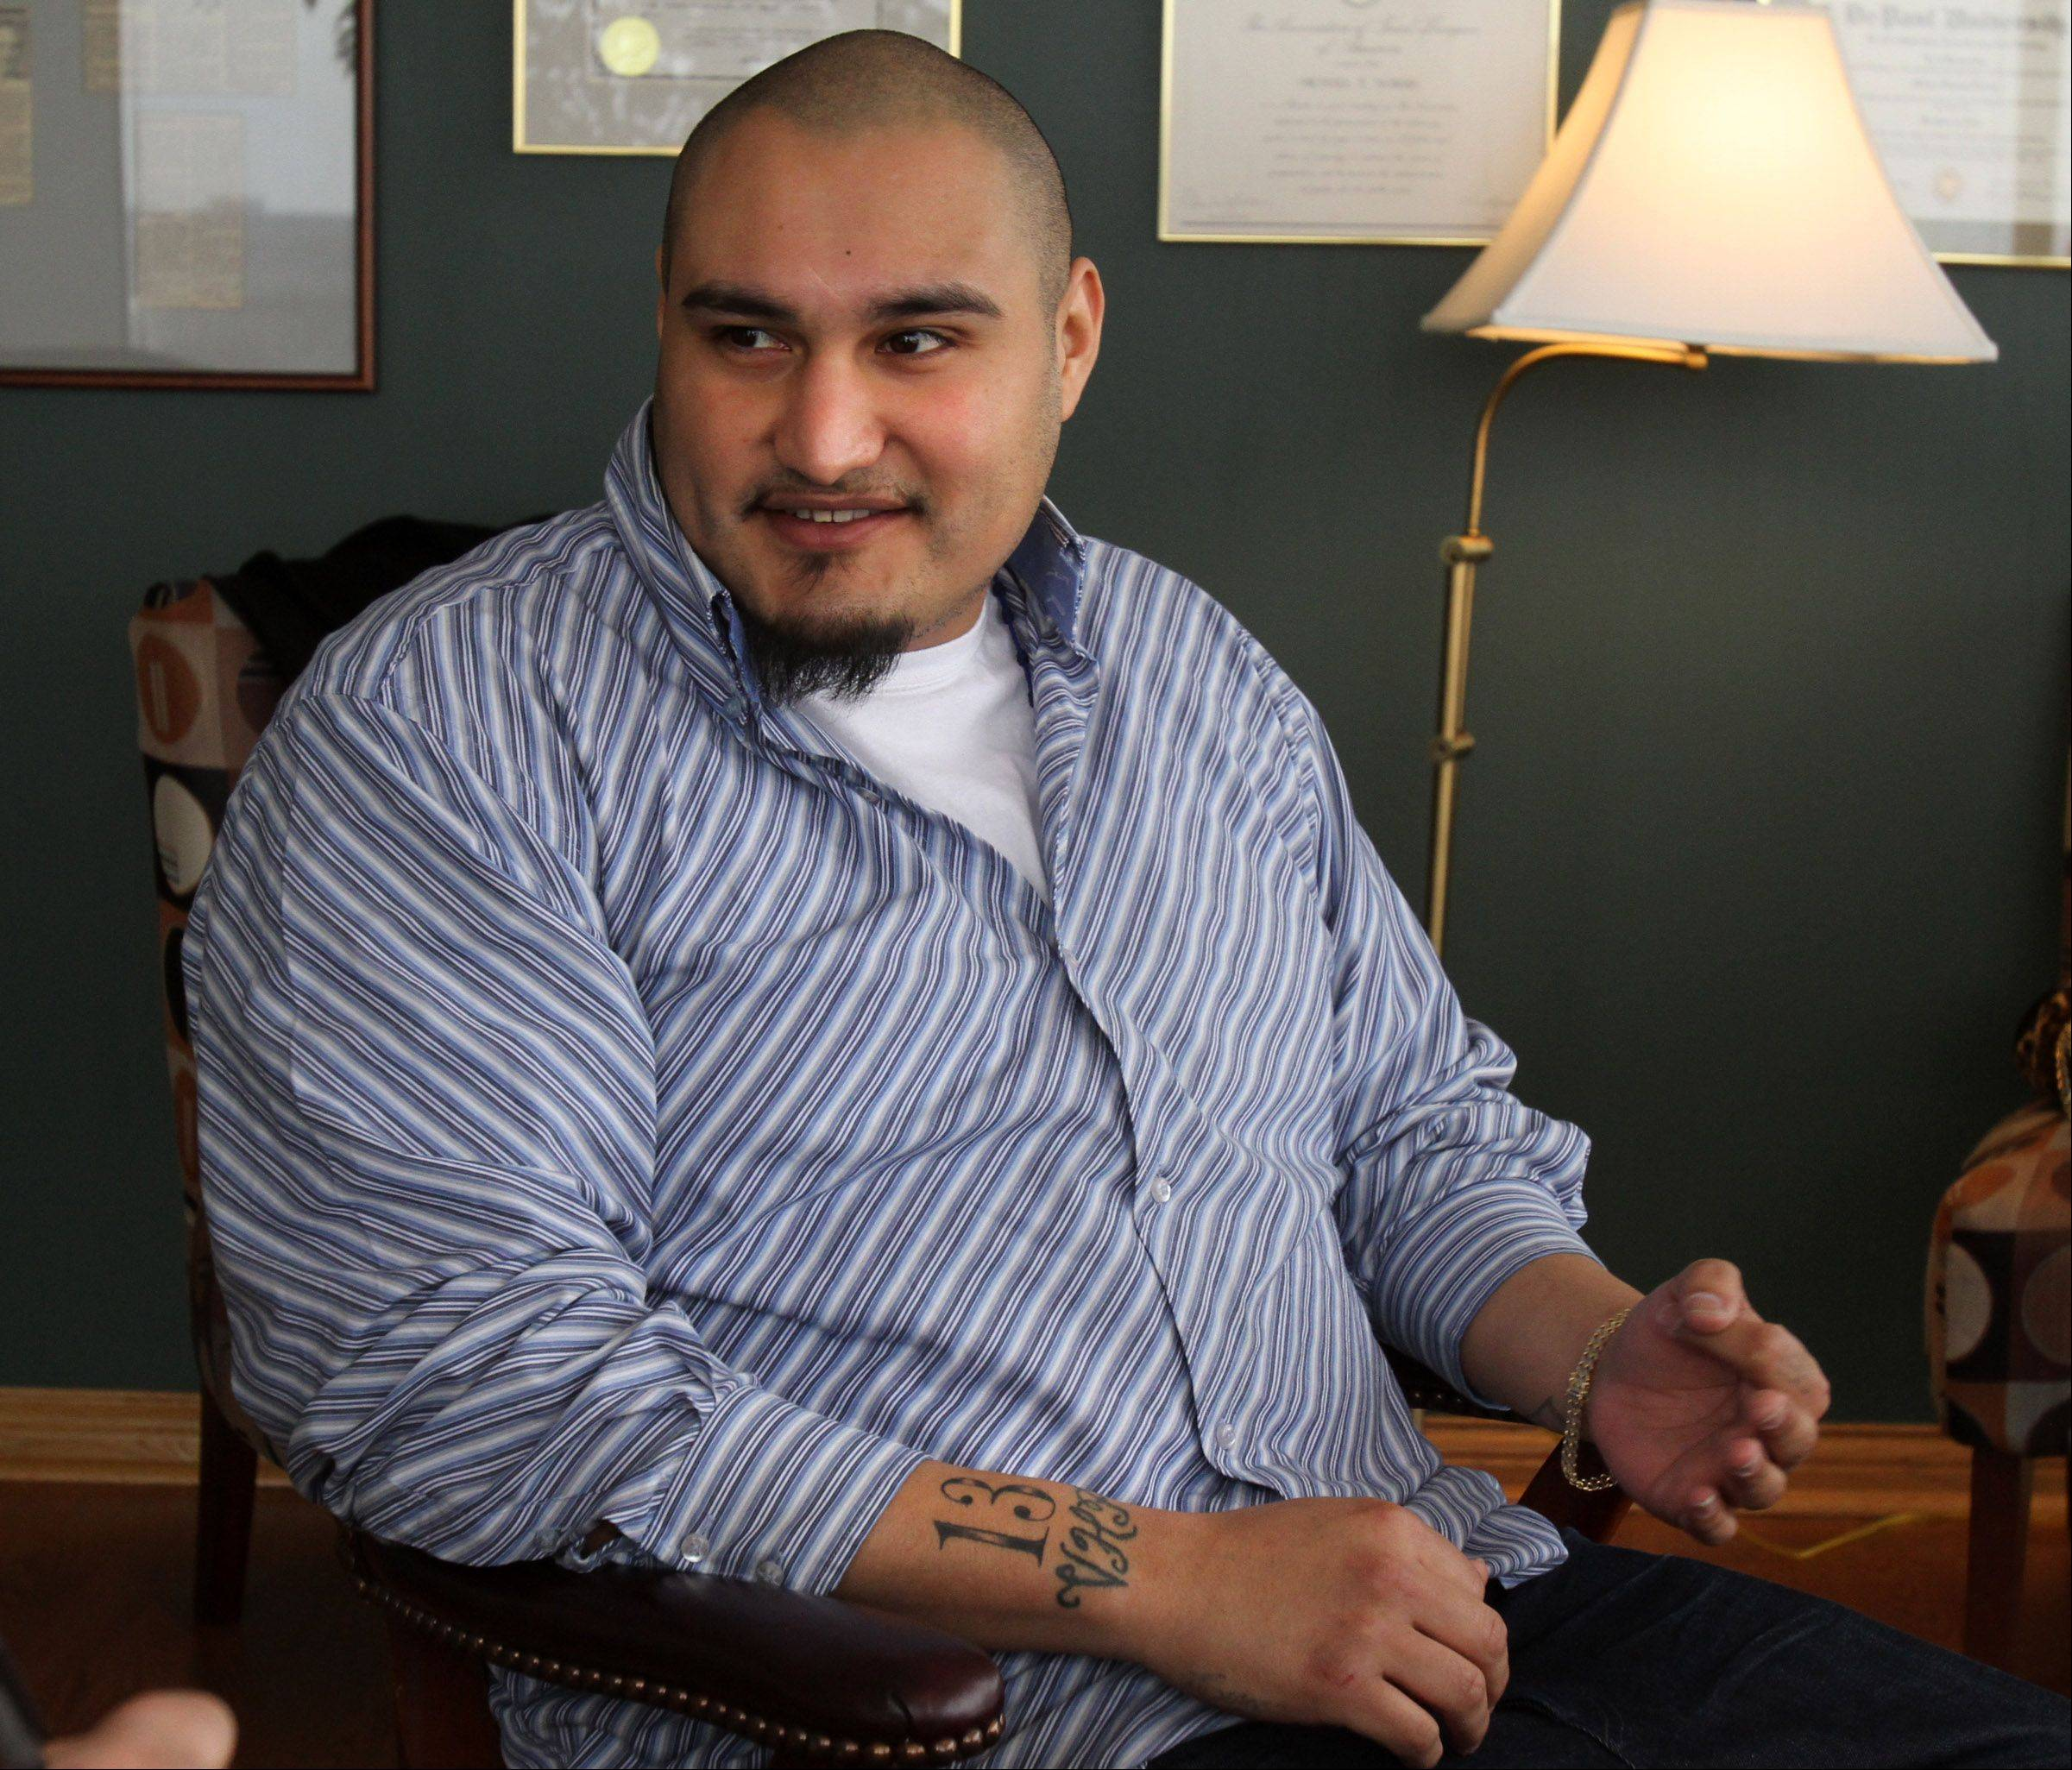 Victor Aguilar-Abazan, 24, says he�s grateful for a second chance after drug charges against him were dismissed in the wake of the arrests of three former Schaumburg undercover officers.